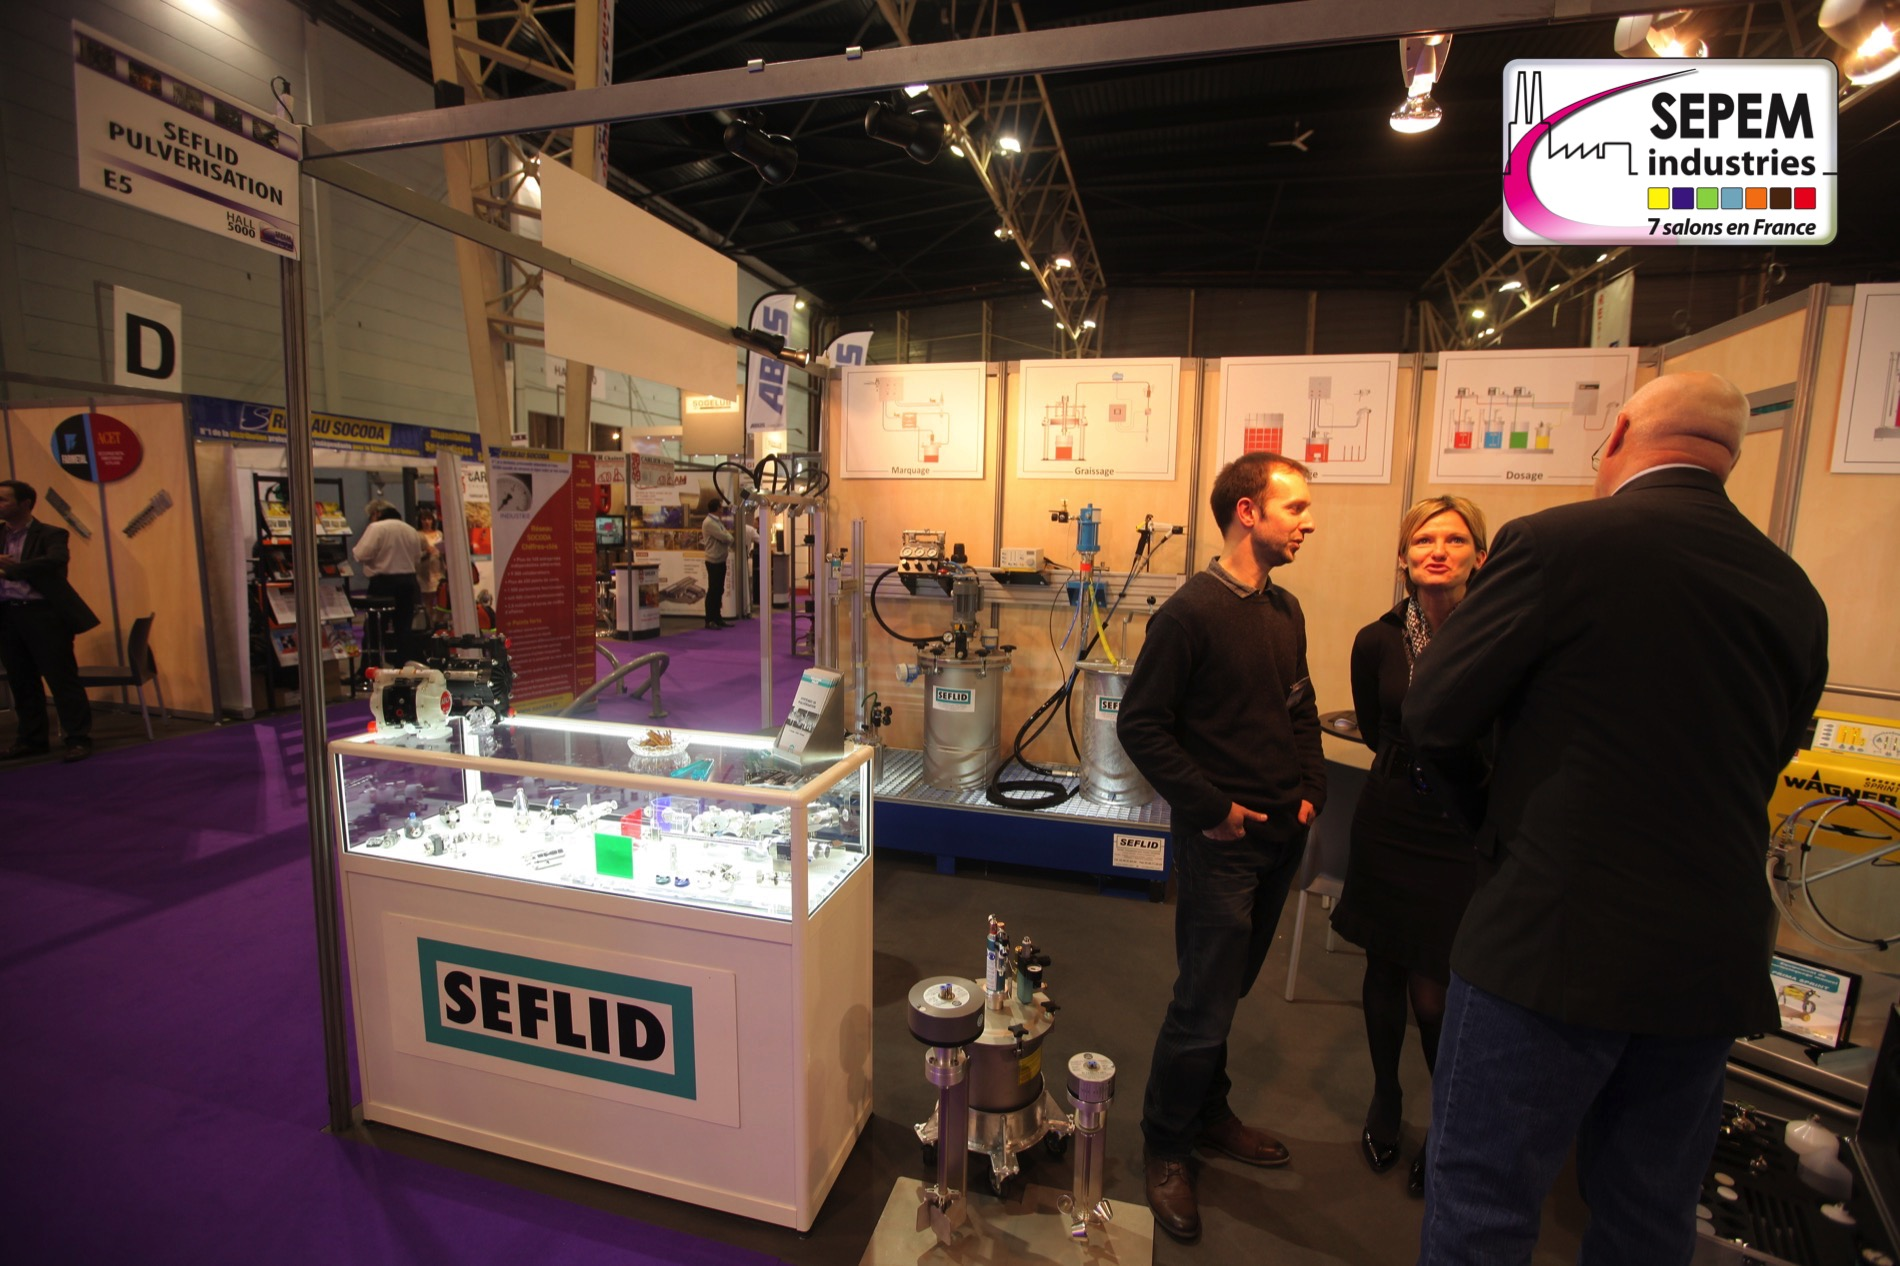 Salon sepem douai 2015 seflid for Salon sepem